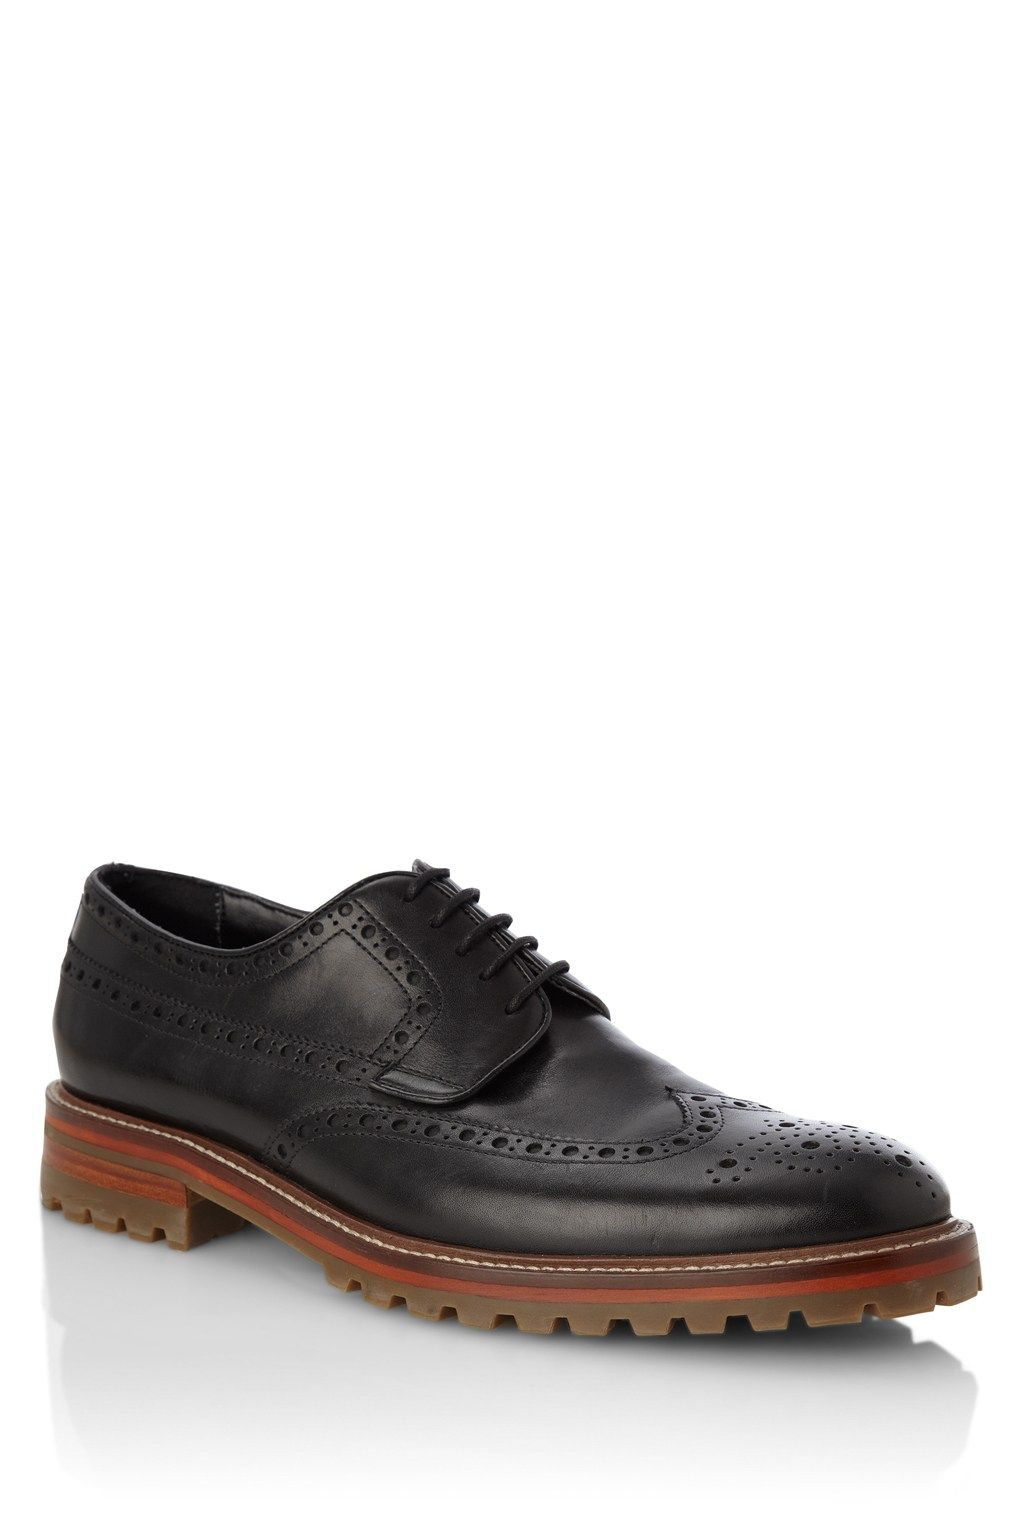 41125a8b44 Chuck Leather Brogues - Mens Shoes - French Connection | Mens ...